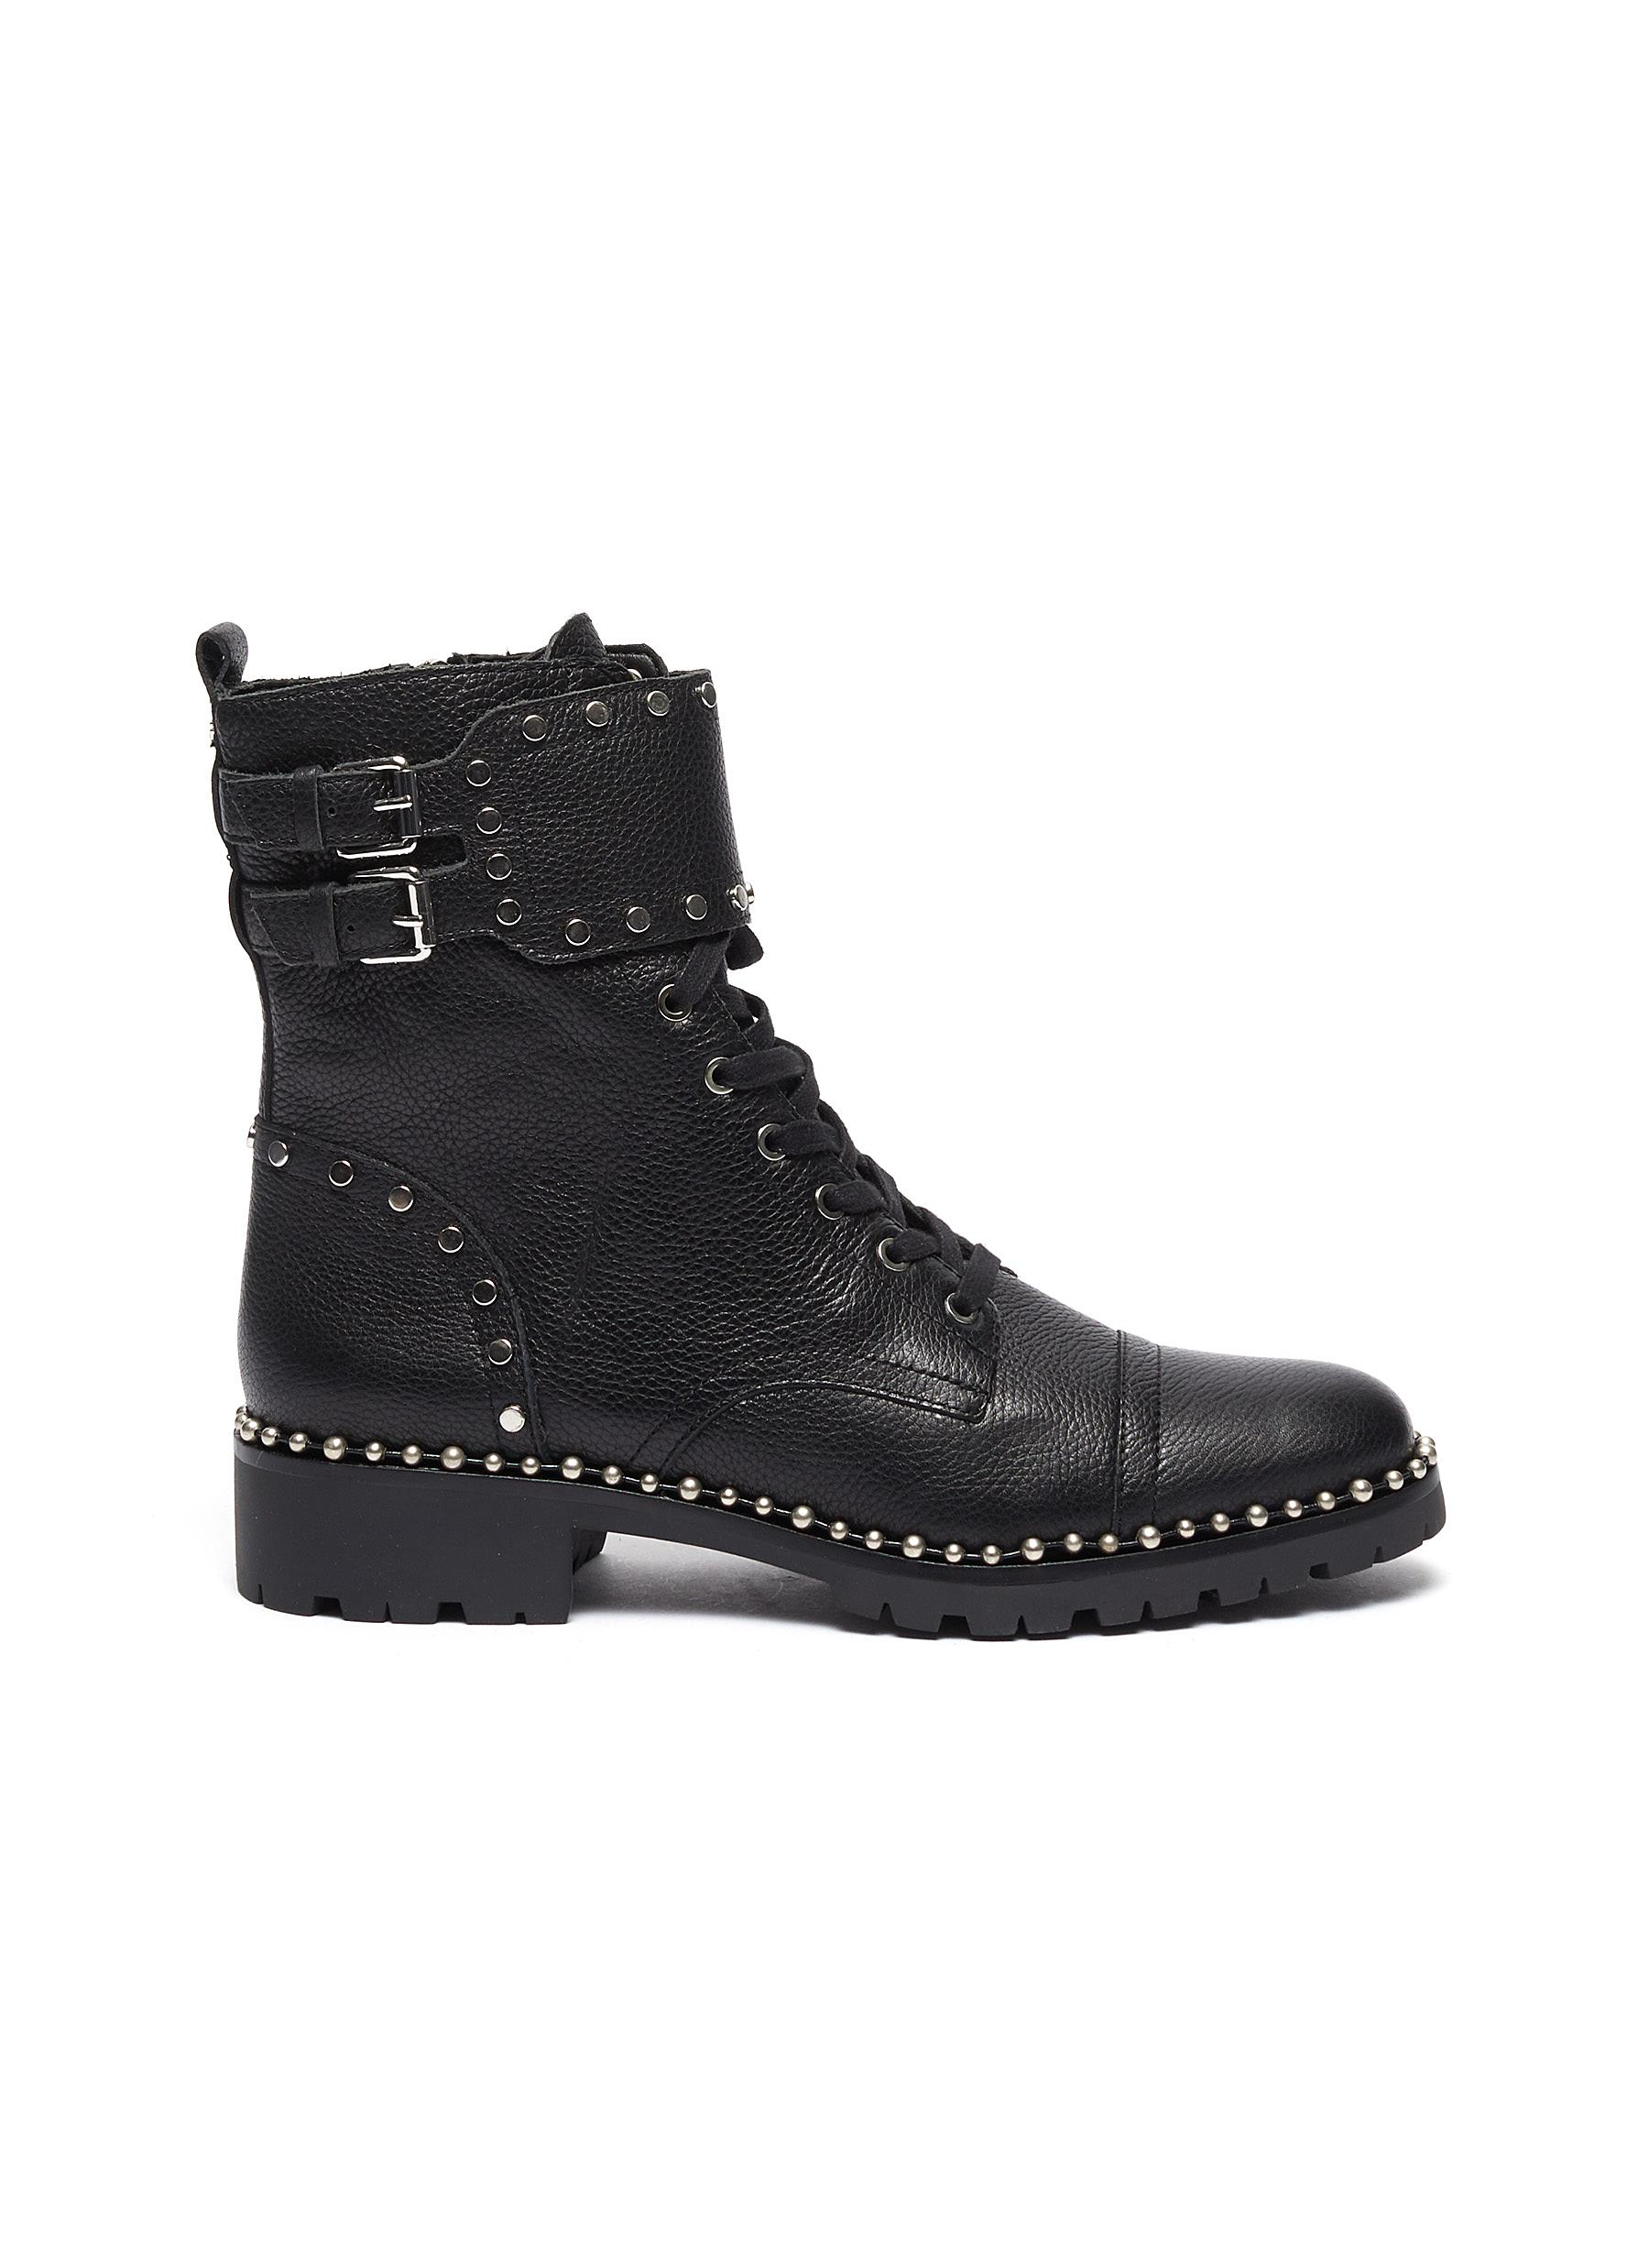 Jennifer buckled stud leather combat boots by Sam Edelman